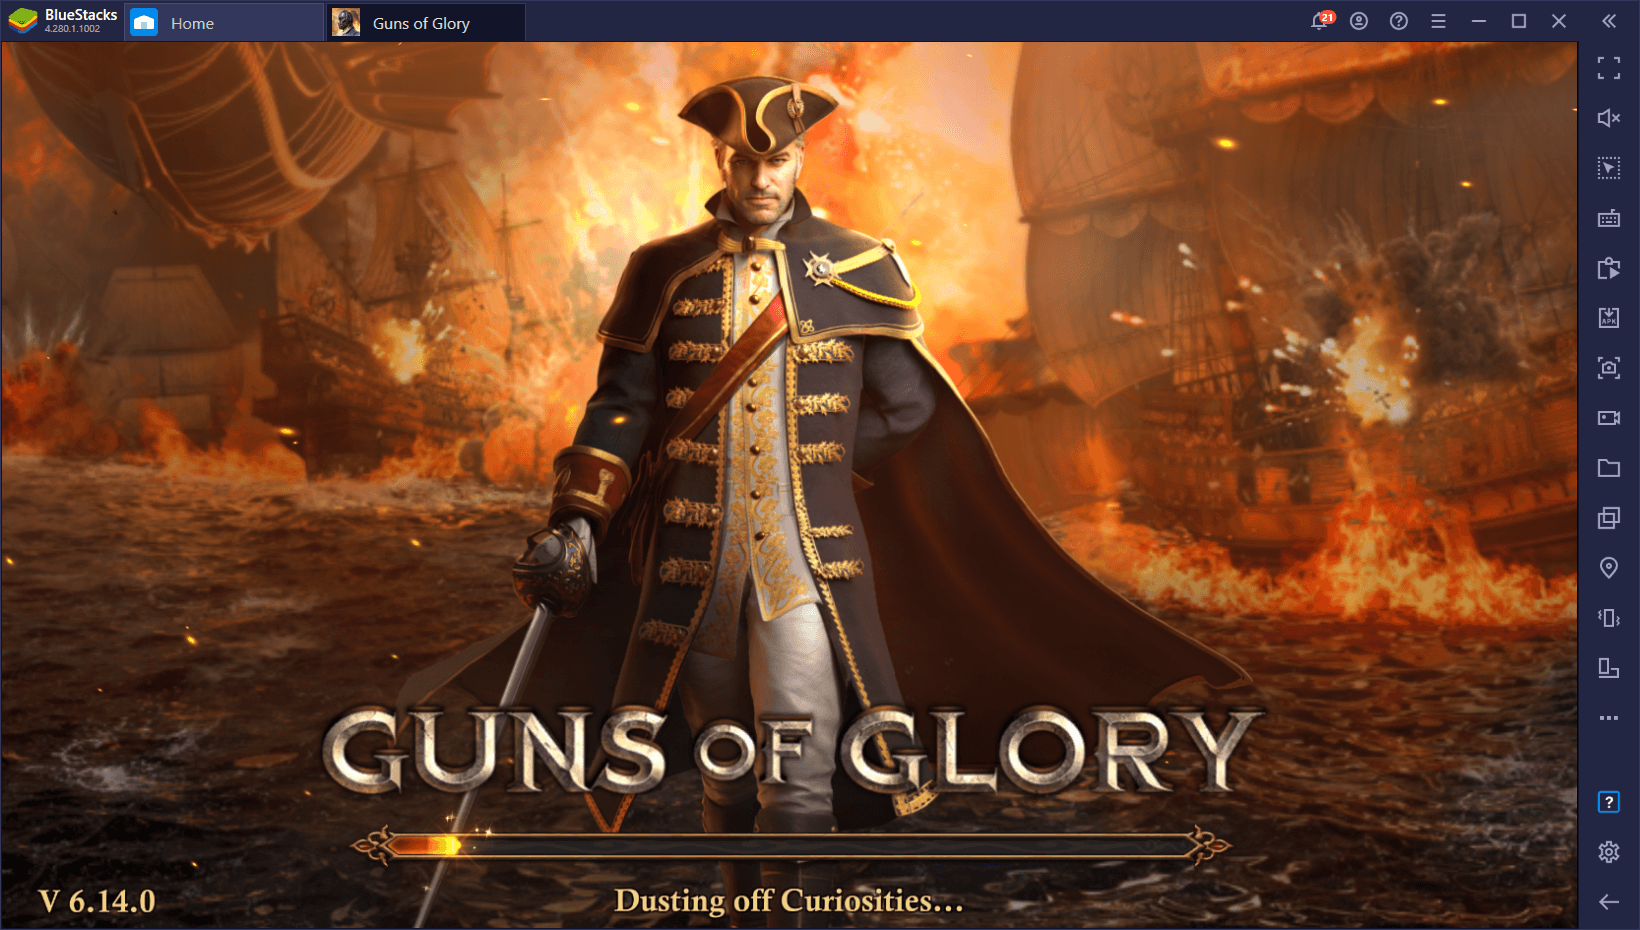 Guns of Glory on PC – How to Use BlueStacks' Tools to Dominate Your Enemies